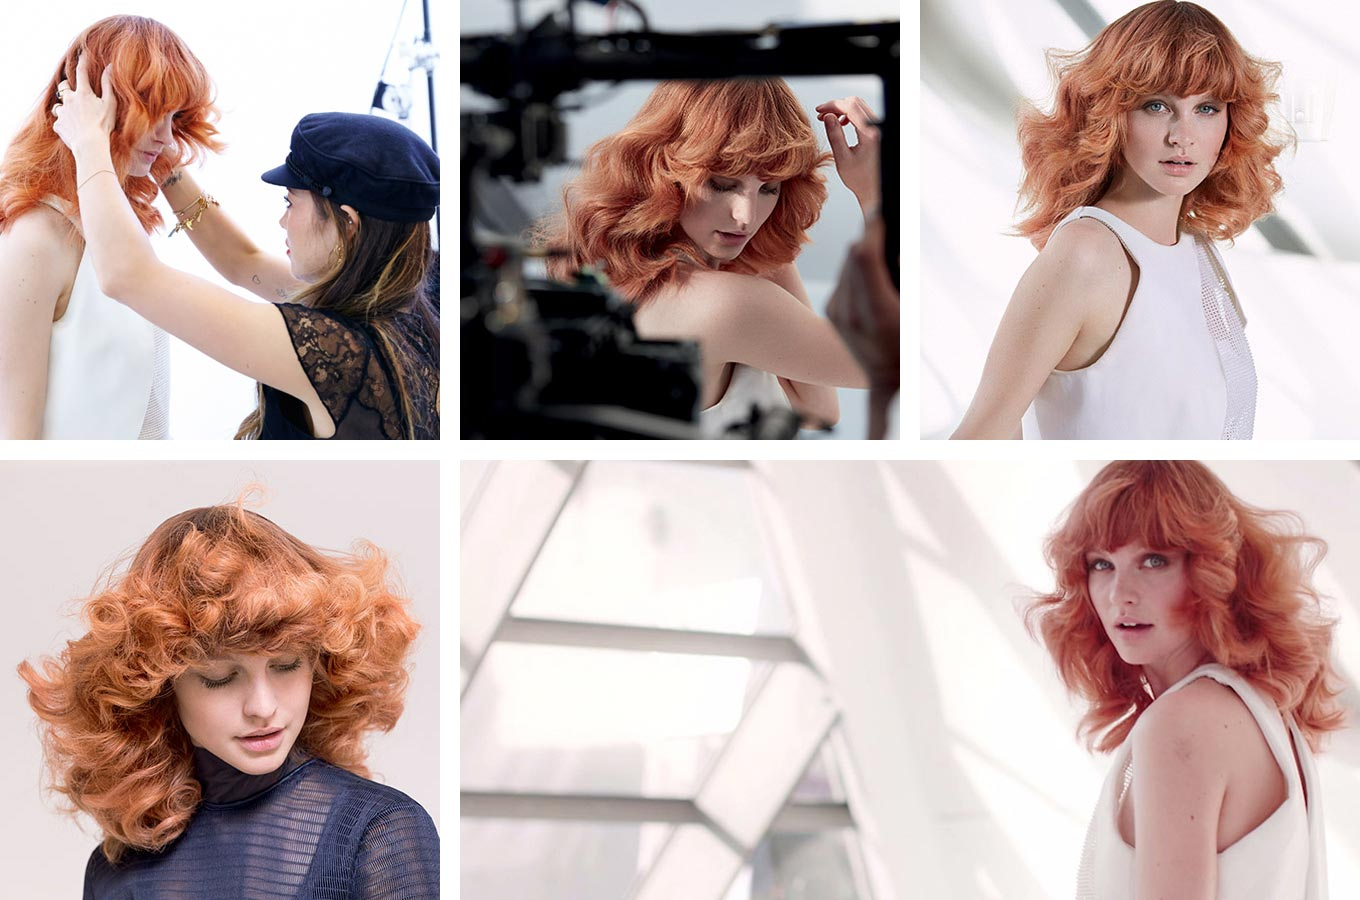 Wella účesy jaro/léto 2015 – i černé vlasy mohou vypadat vzdušně a prosvětleně. Účes je z kolekce Wella Professionals Distilled Collection – Spring/Summer 2015.